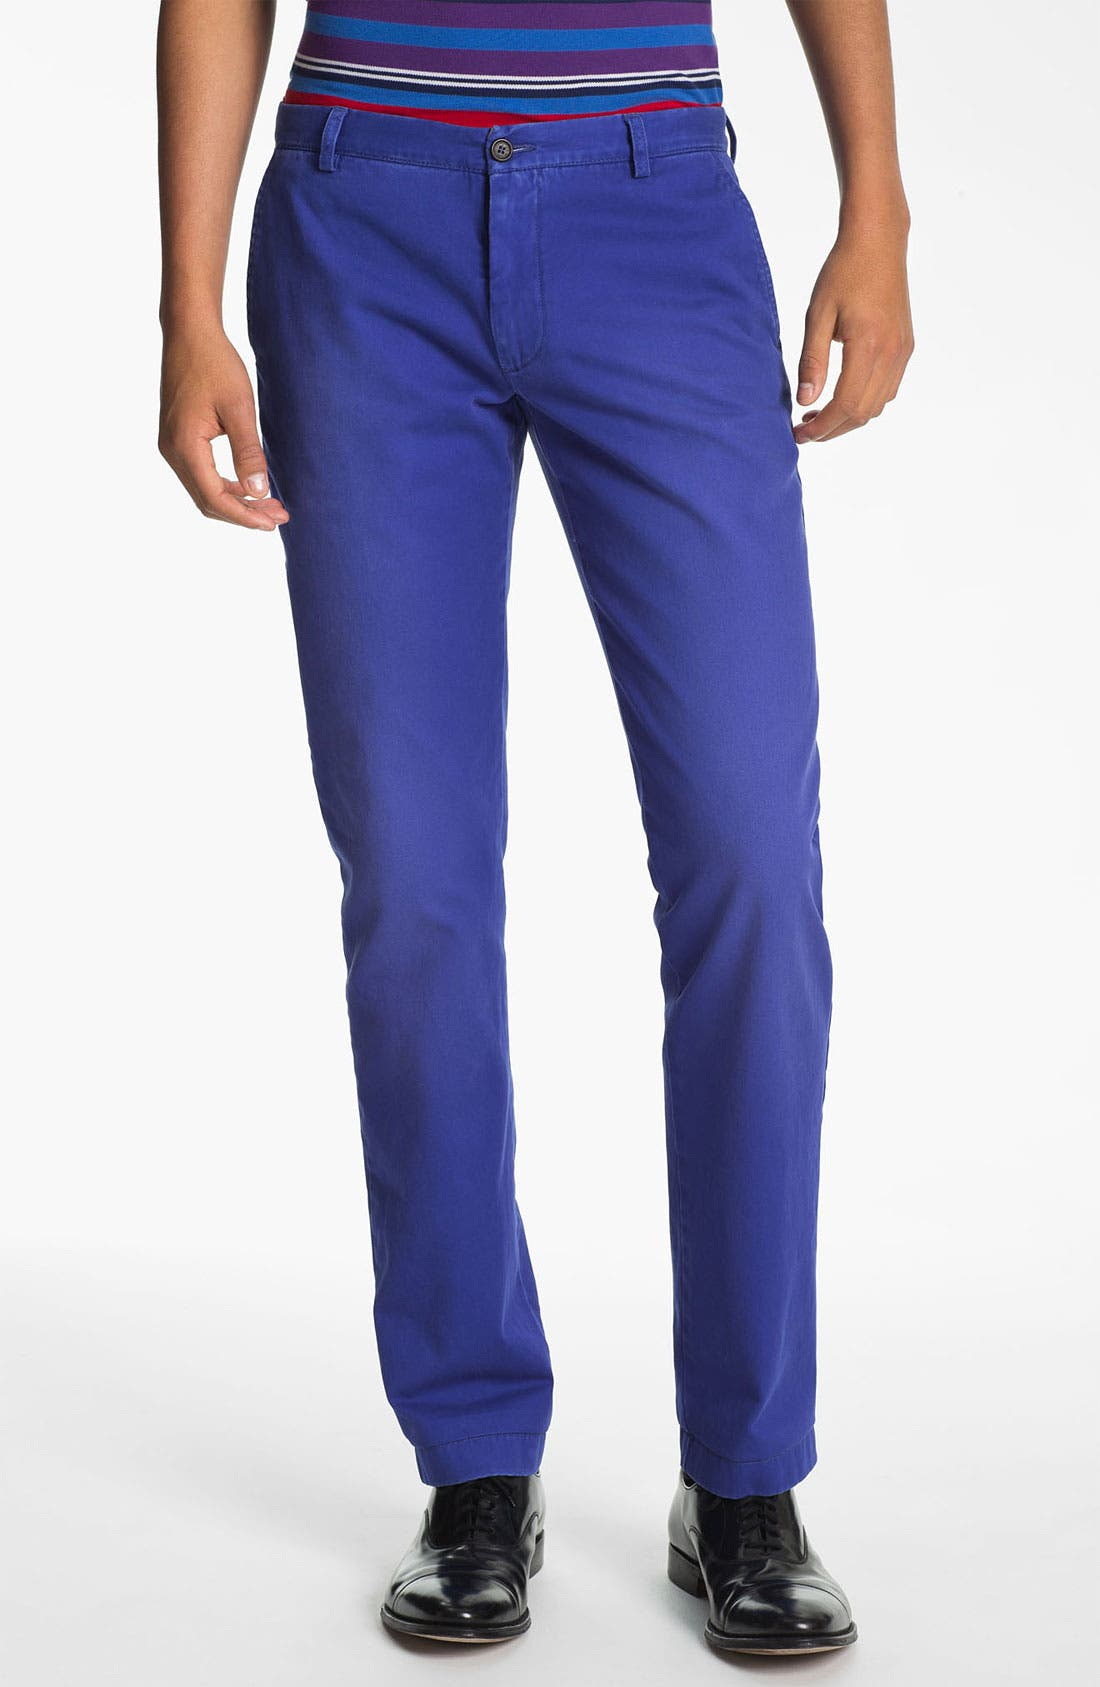 Alternate Image 1 Selected - Etro 'Cuba Sabbiato' Slim Fit Pants